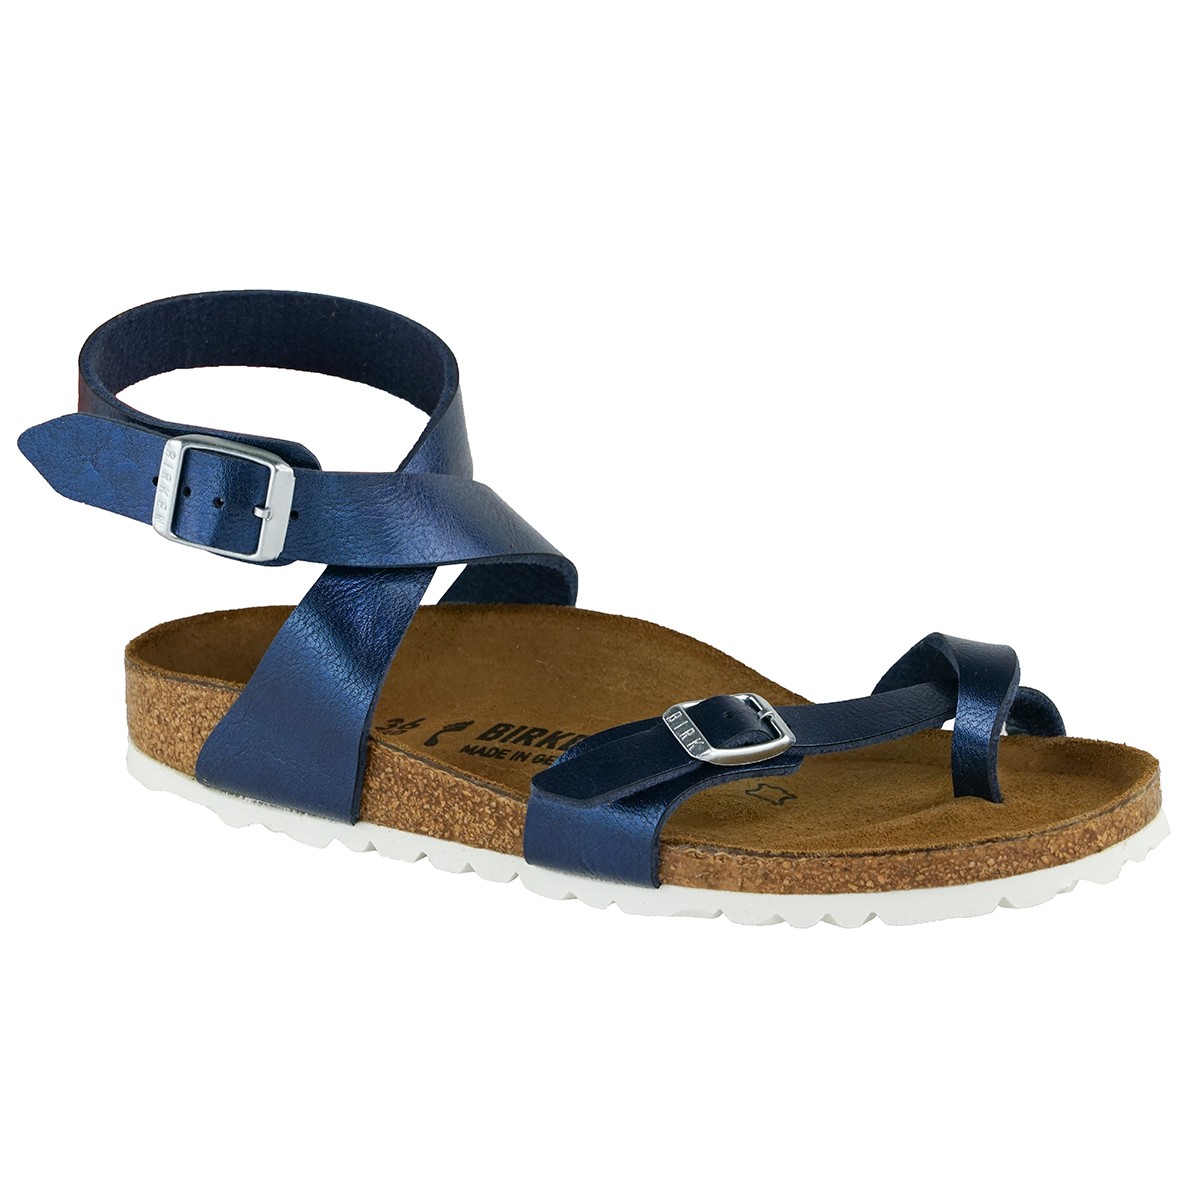 139bbf3b0db Details about Birkenstock Women s Yara Birko-Flor Sandals Graceful Sea 36